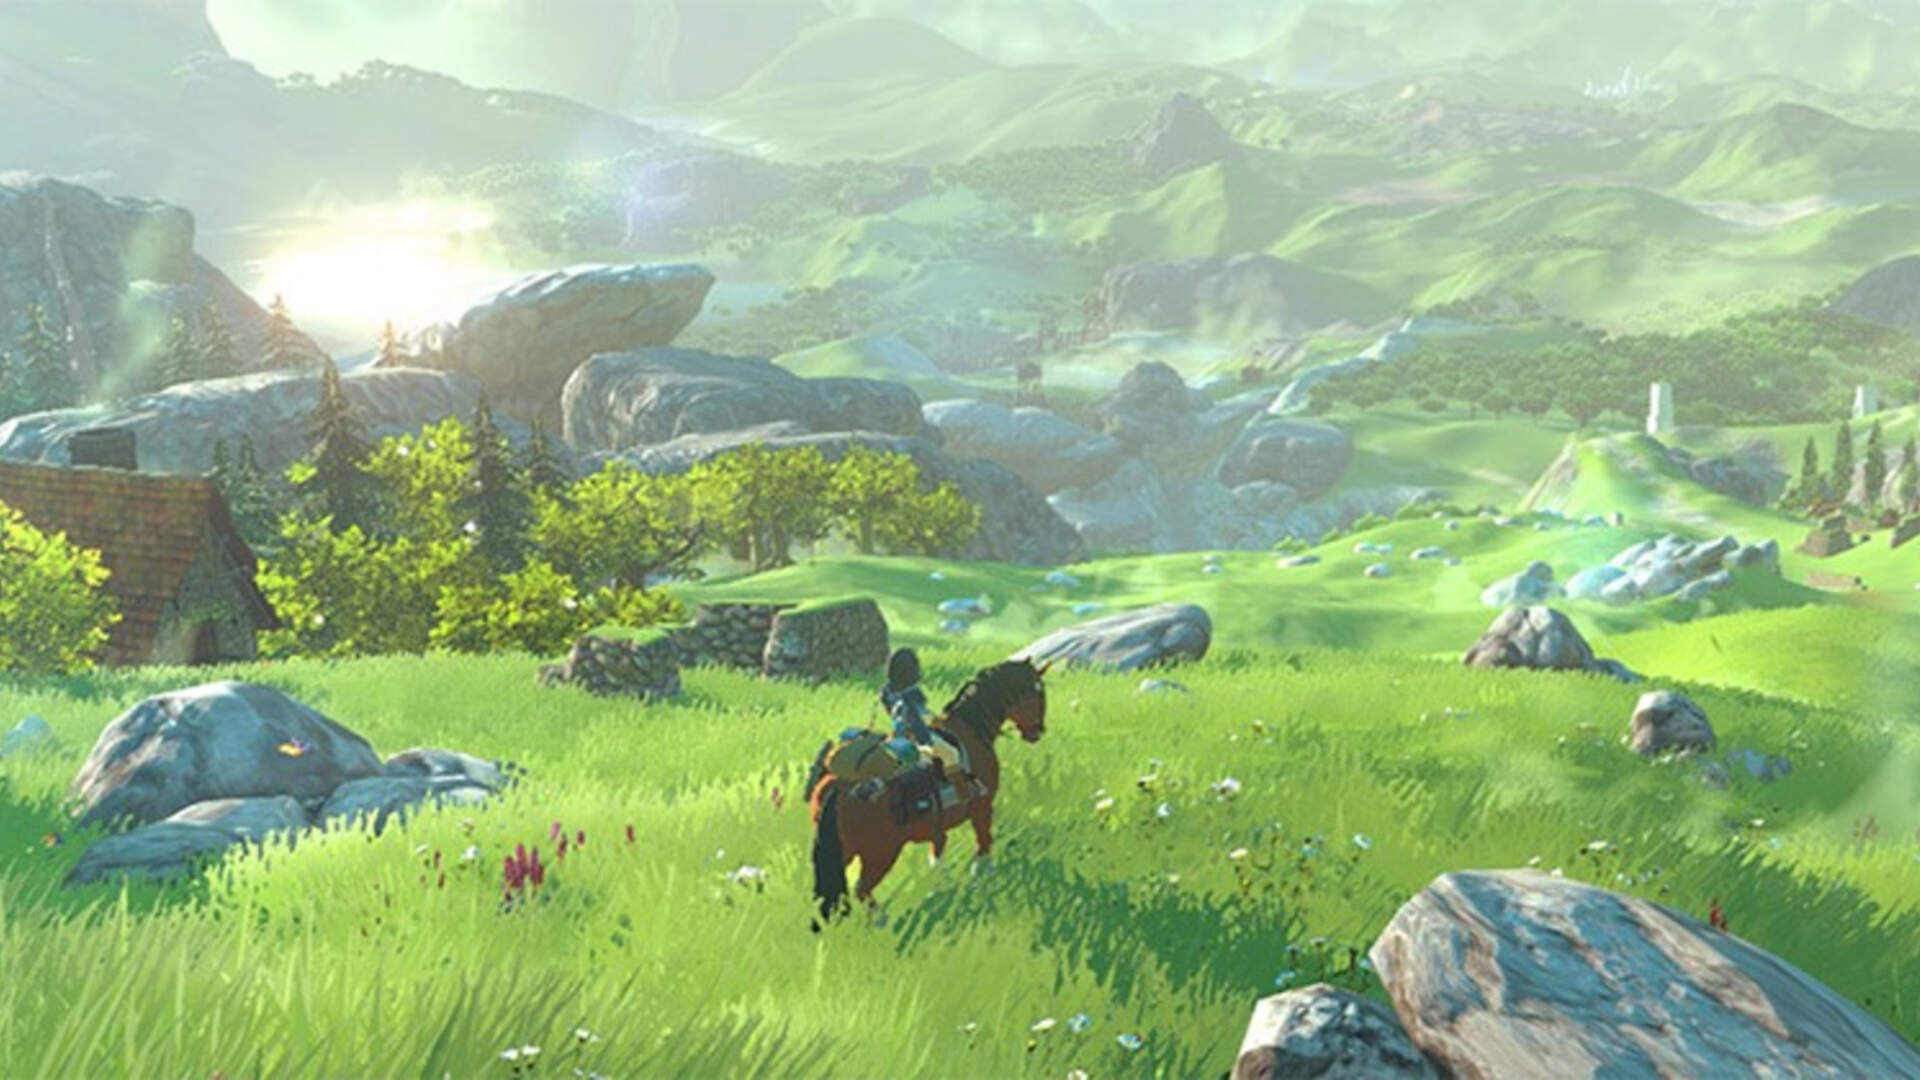 E3 2014: The Next Legend of Zelda Could be Revolutionary… If Nintendo Keeps Their Promises